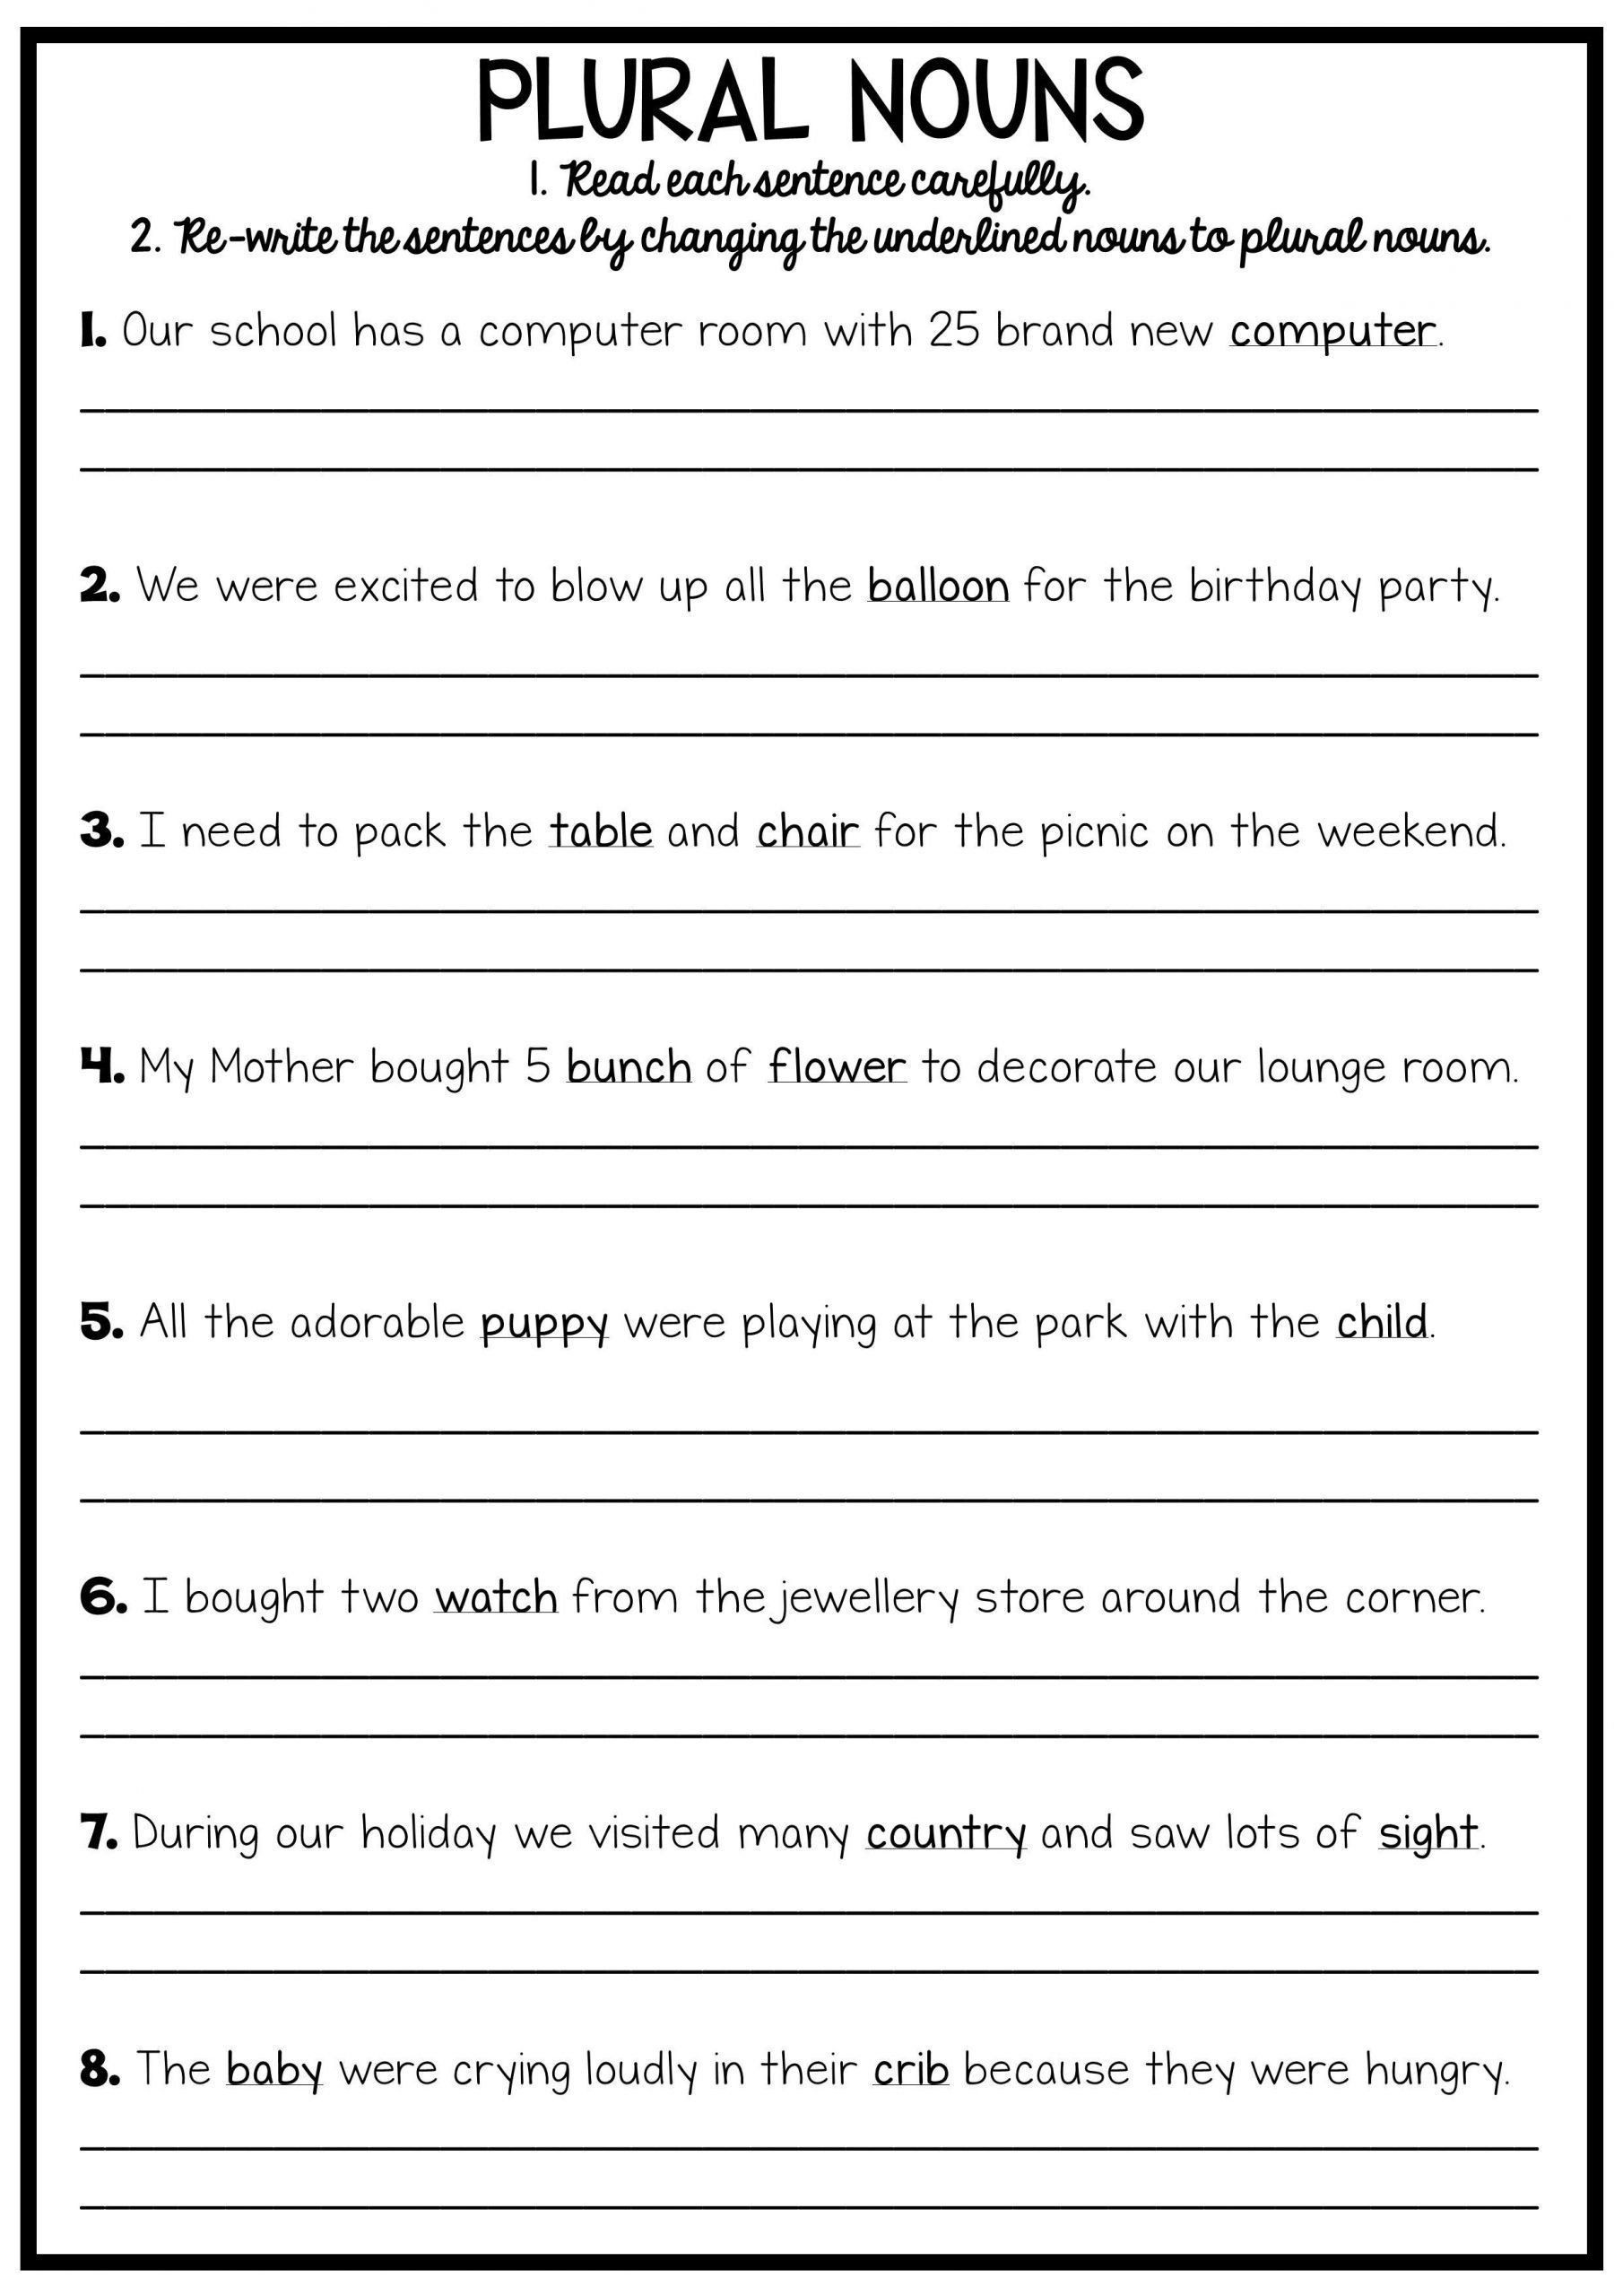 Verb Tense Worksheets 3rd Grade Pin On Gage Tutoring